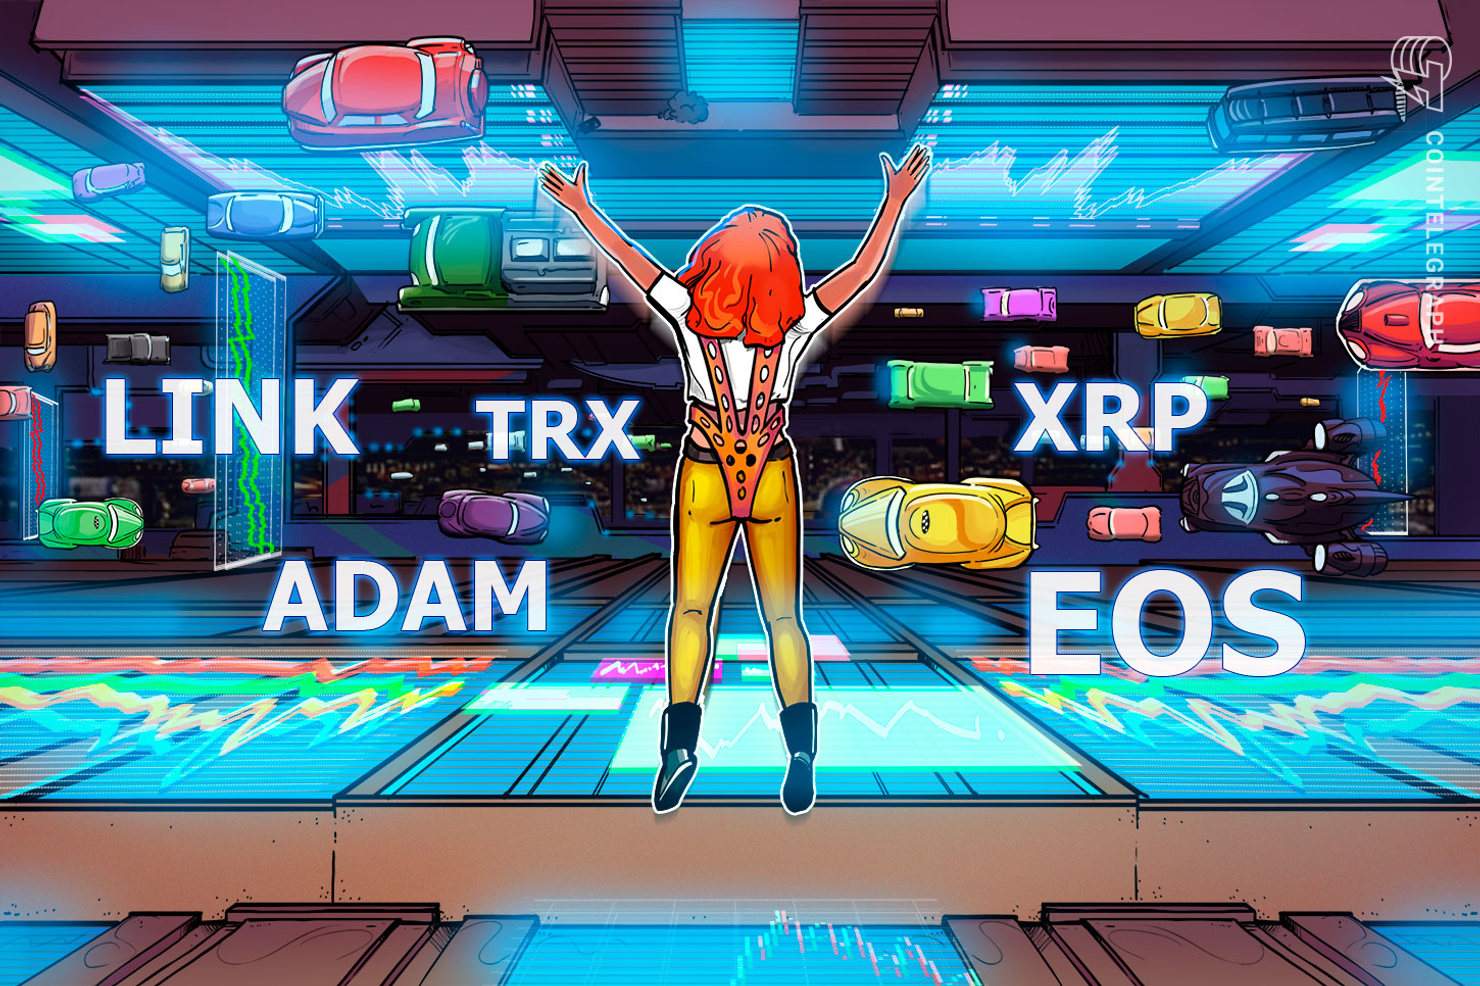 Top-5 Crypto Performers: LINK, TRX, EOS, XRP, ADA